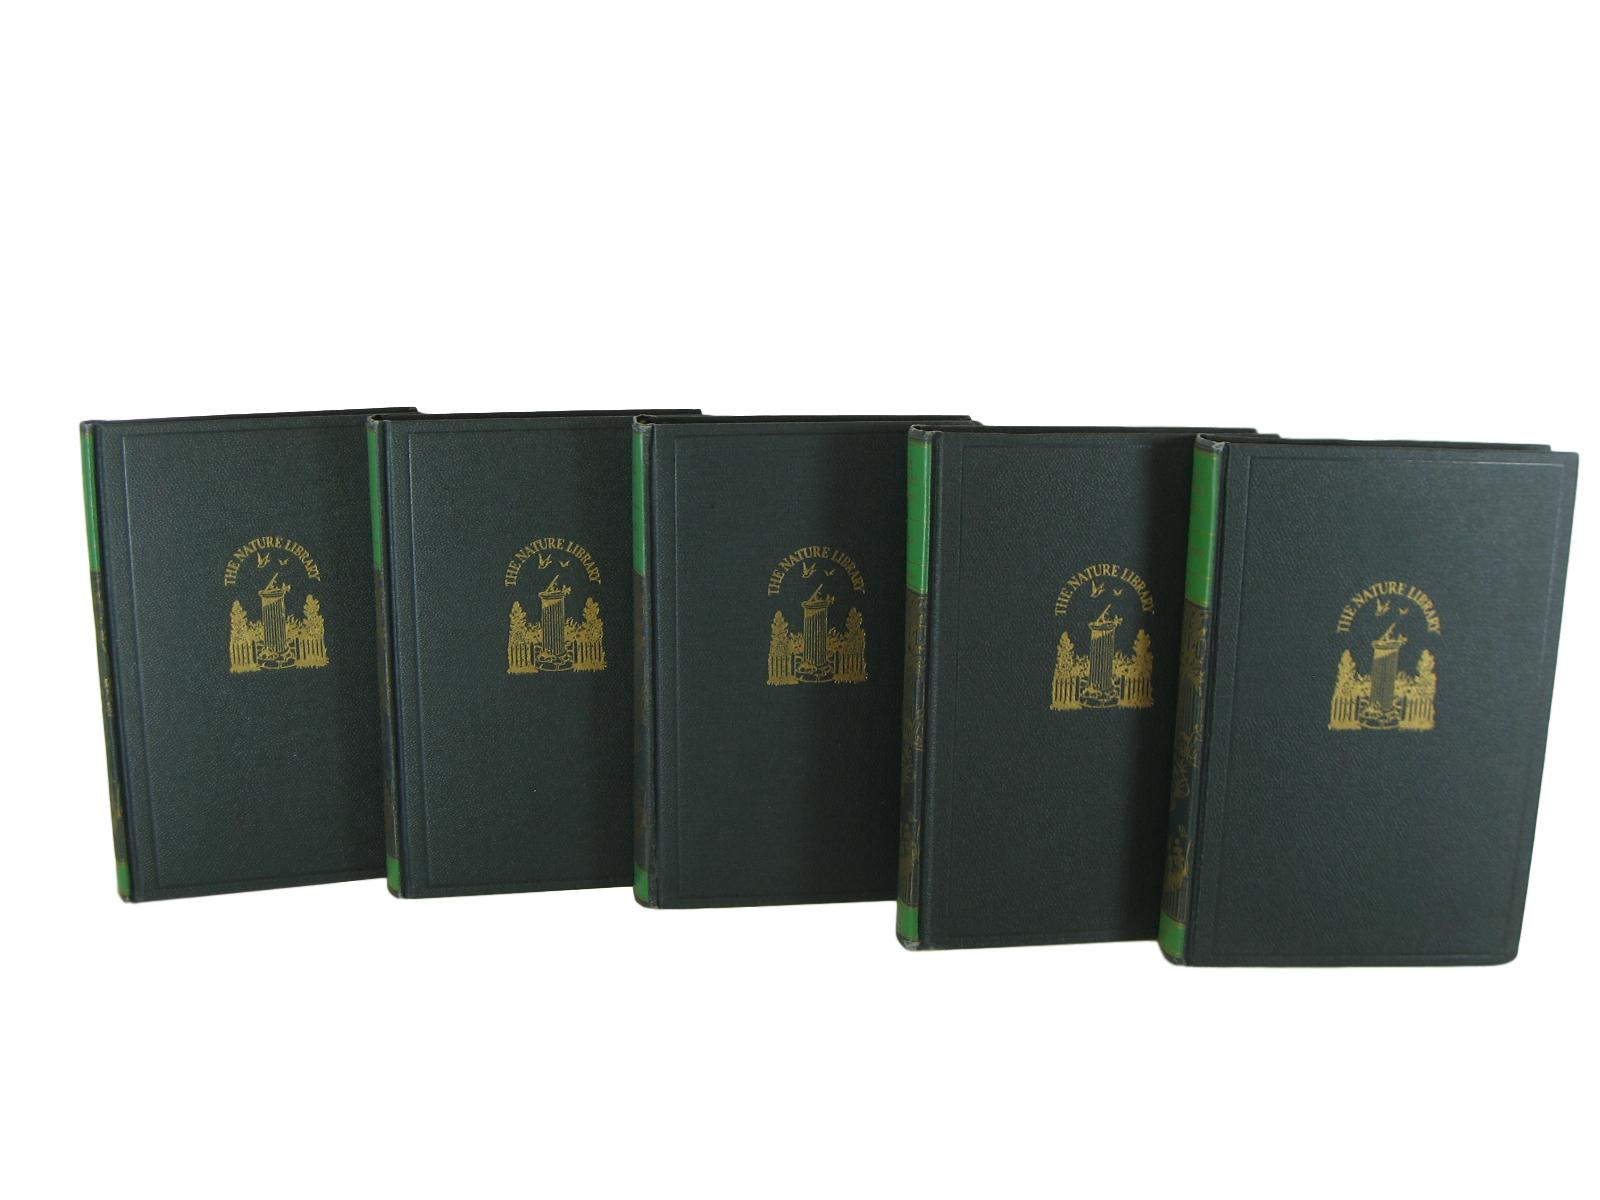 Green Vintage Decorative Books for Decor, S/5, [decorative_books], Decades of Vintage